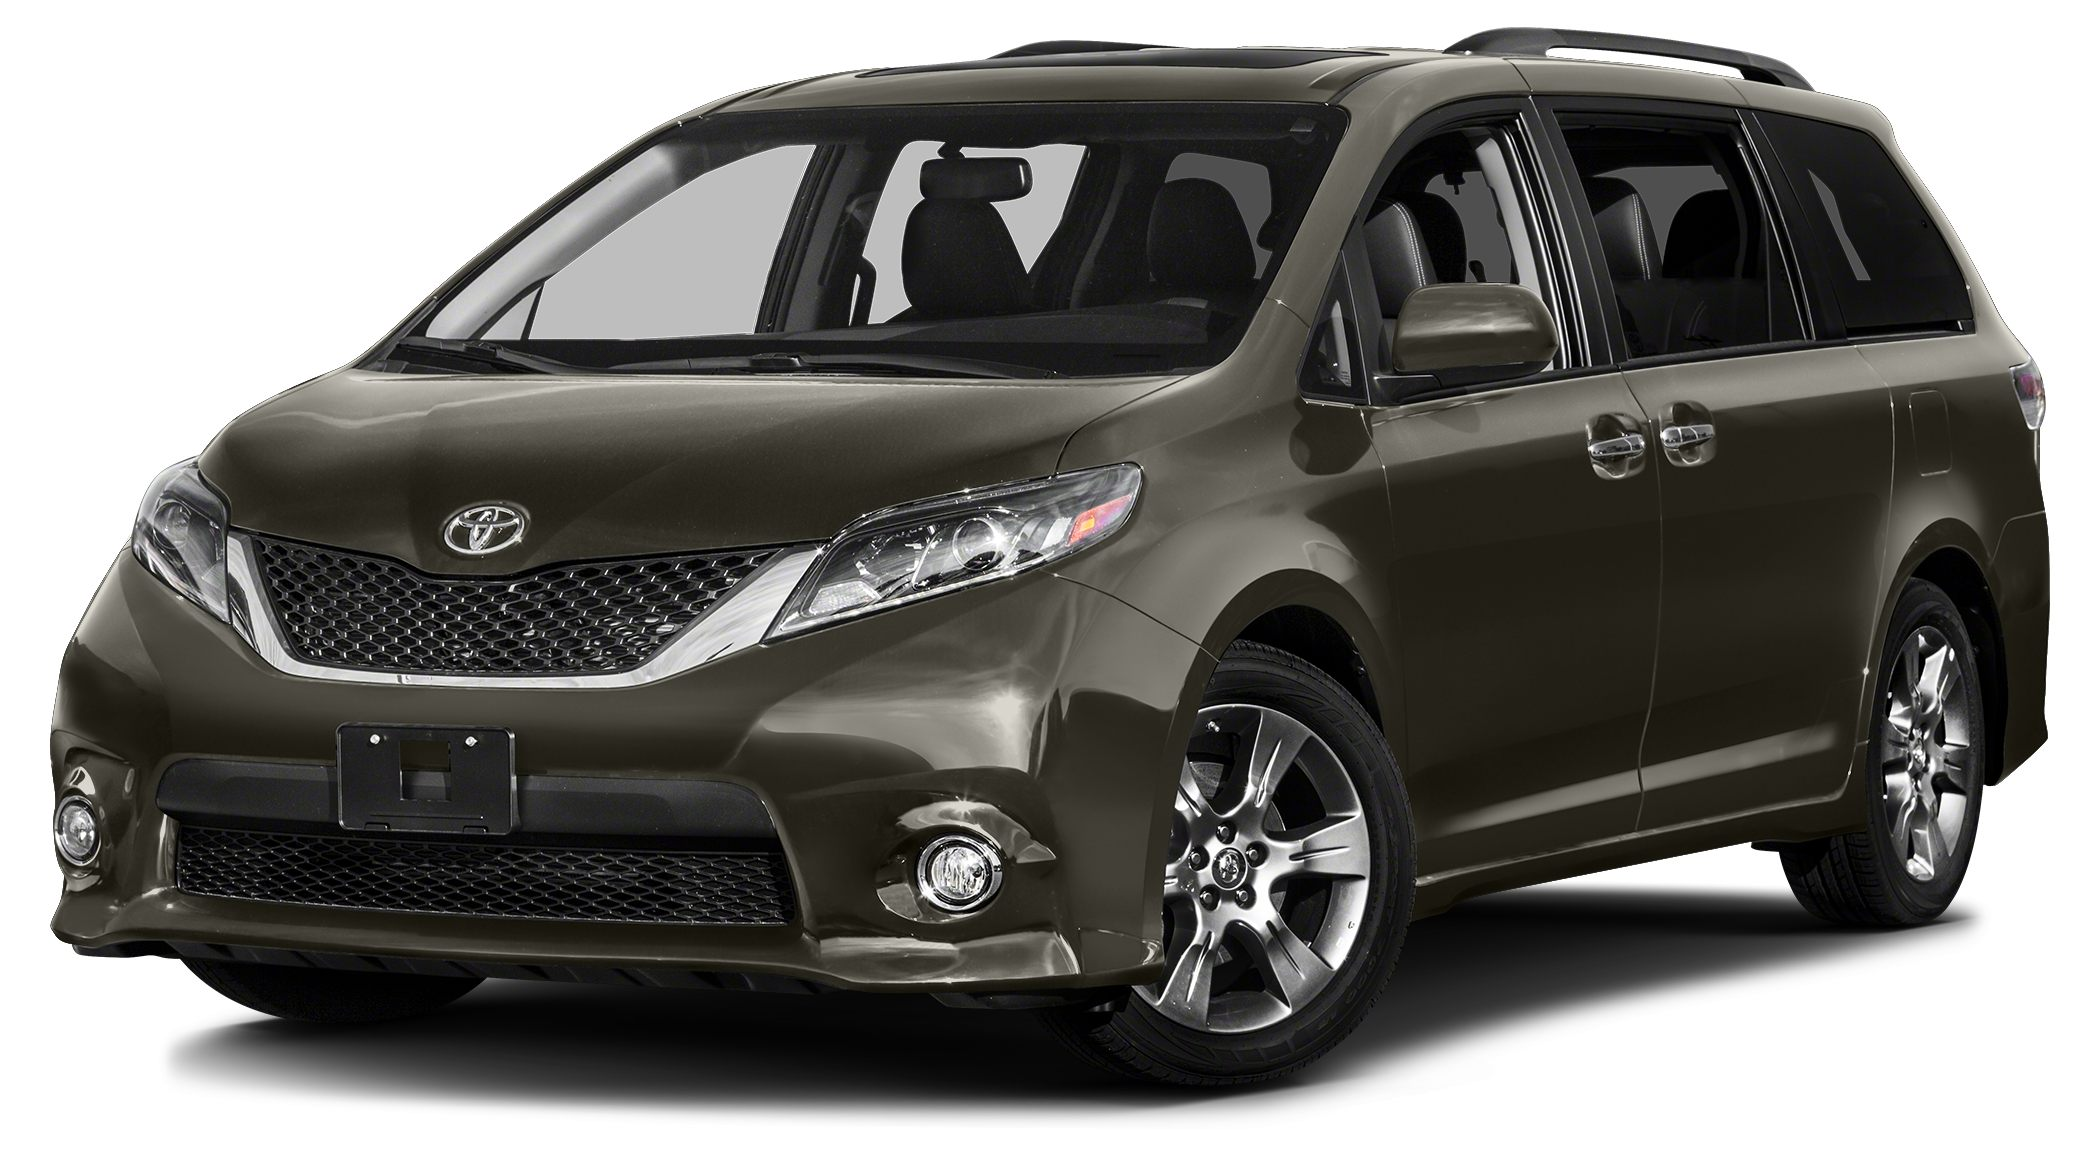 2015 Toyota Sienna SE Premium 8 Passenger EPA 25 MPG Hwy18 MPG City 400 below Kelley Blue Book